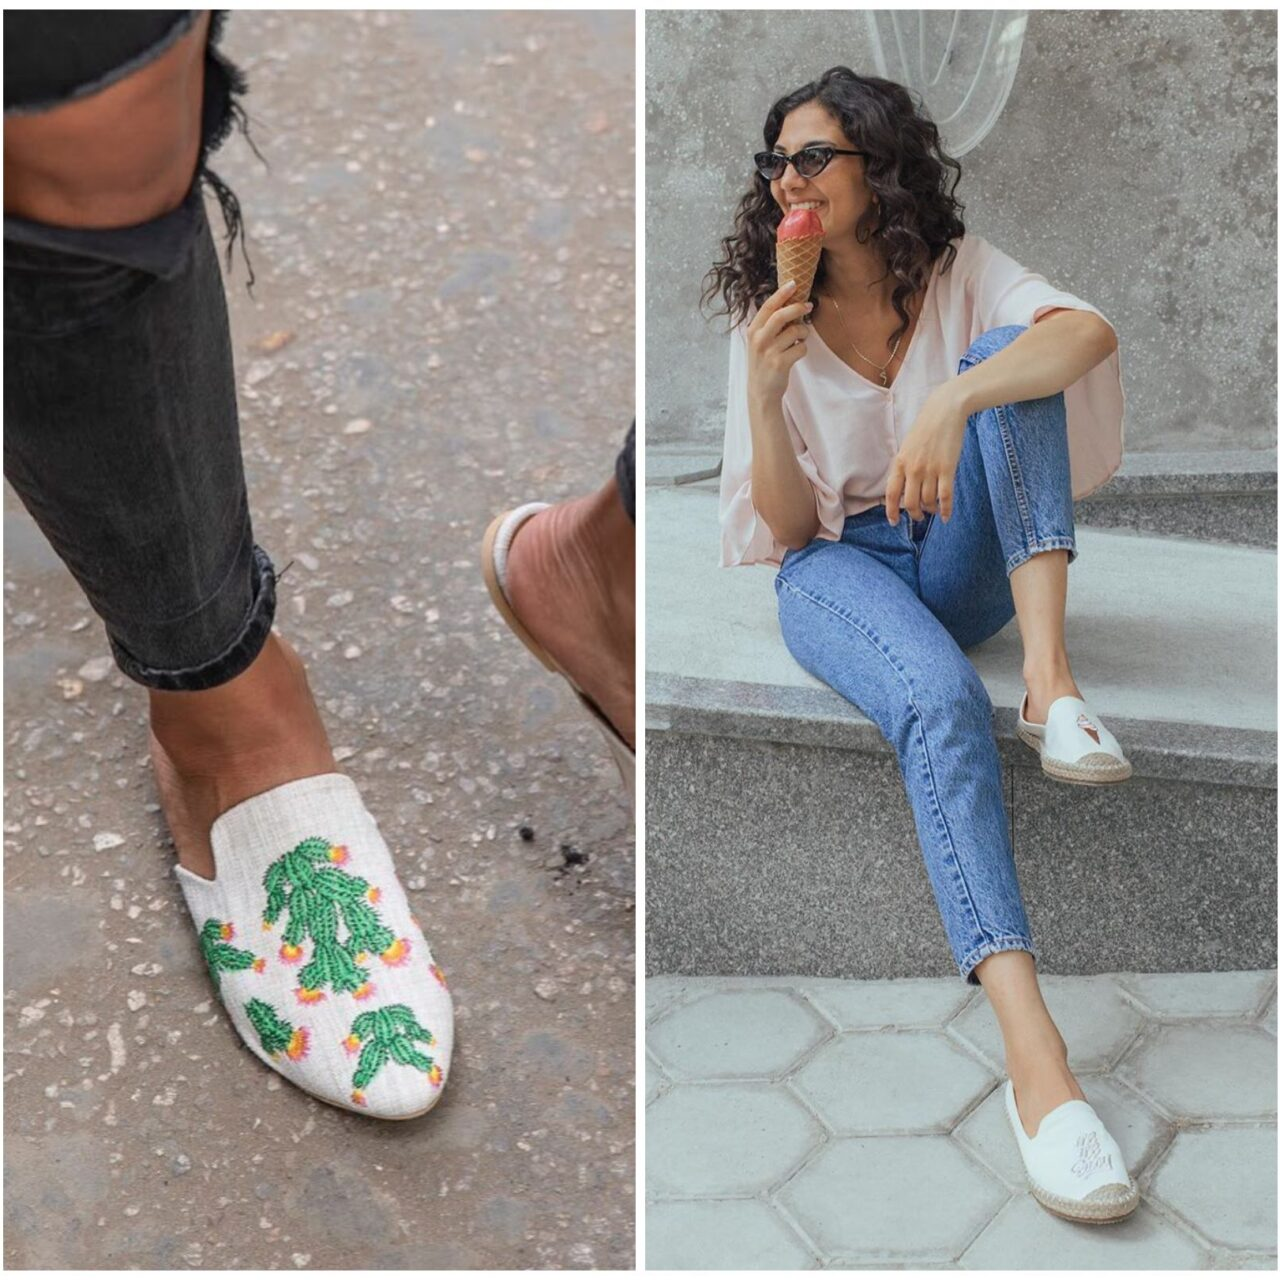 Chatterers Going Local: Here Are 5 Footwear Picks That Are Perfect for Summer 2020!